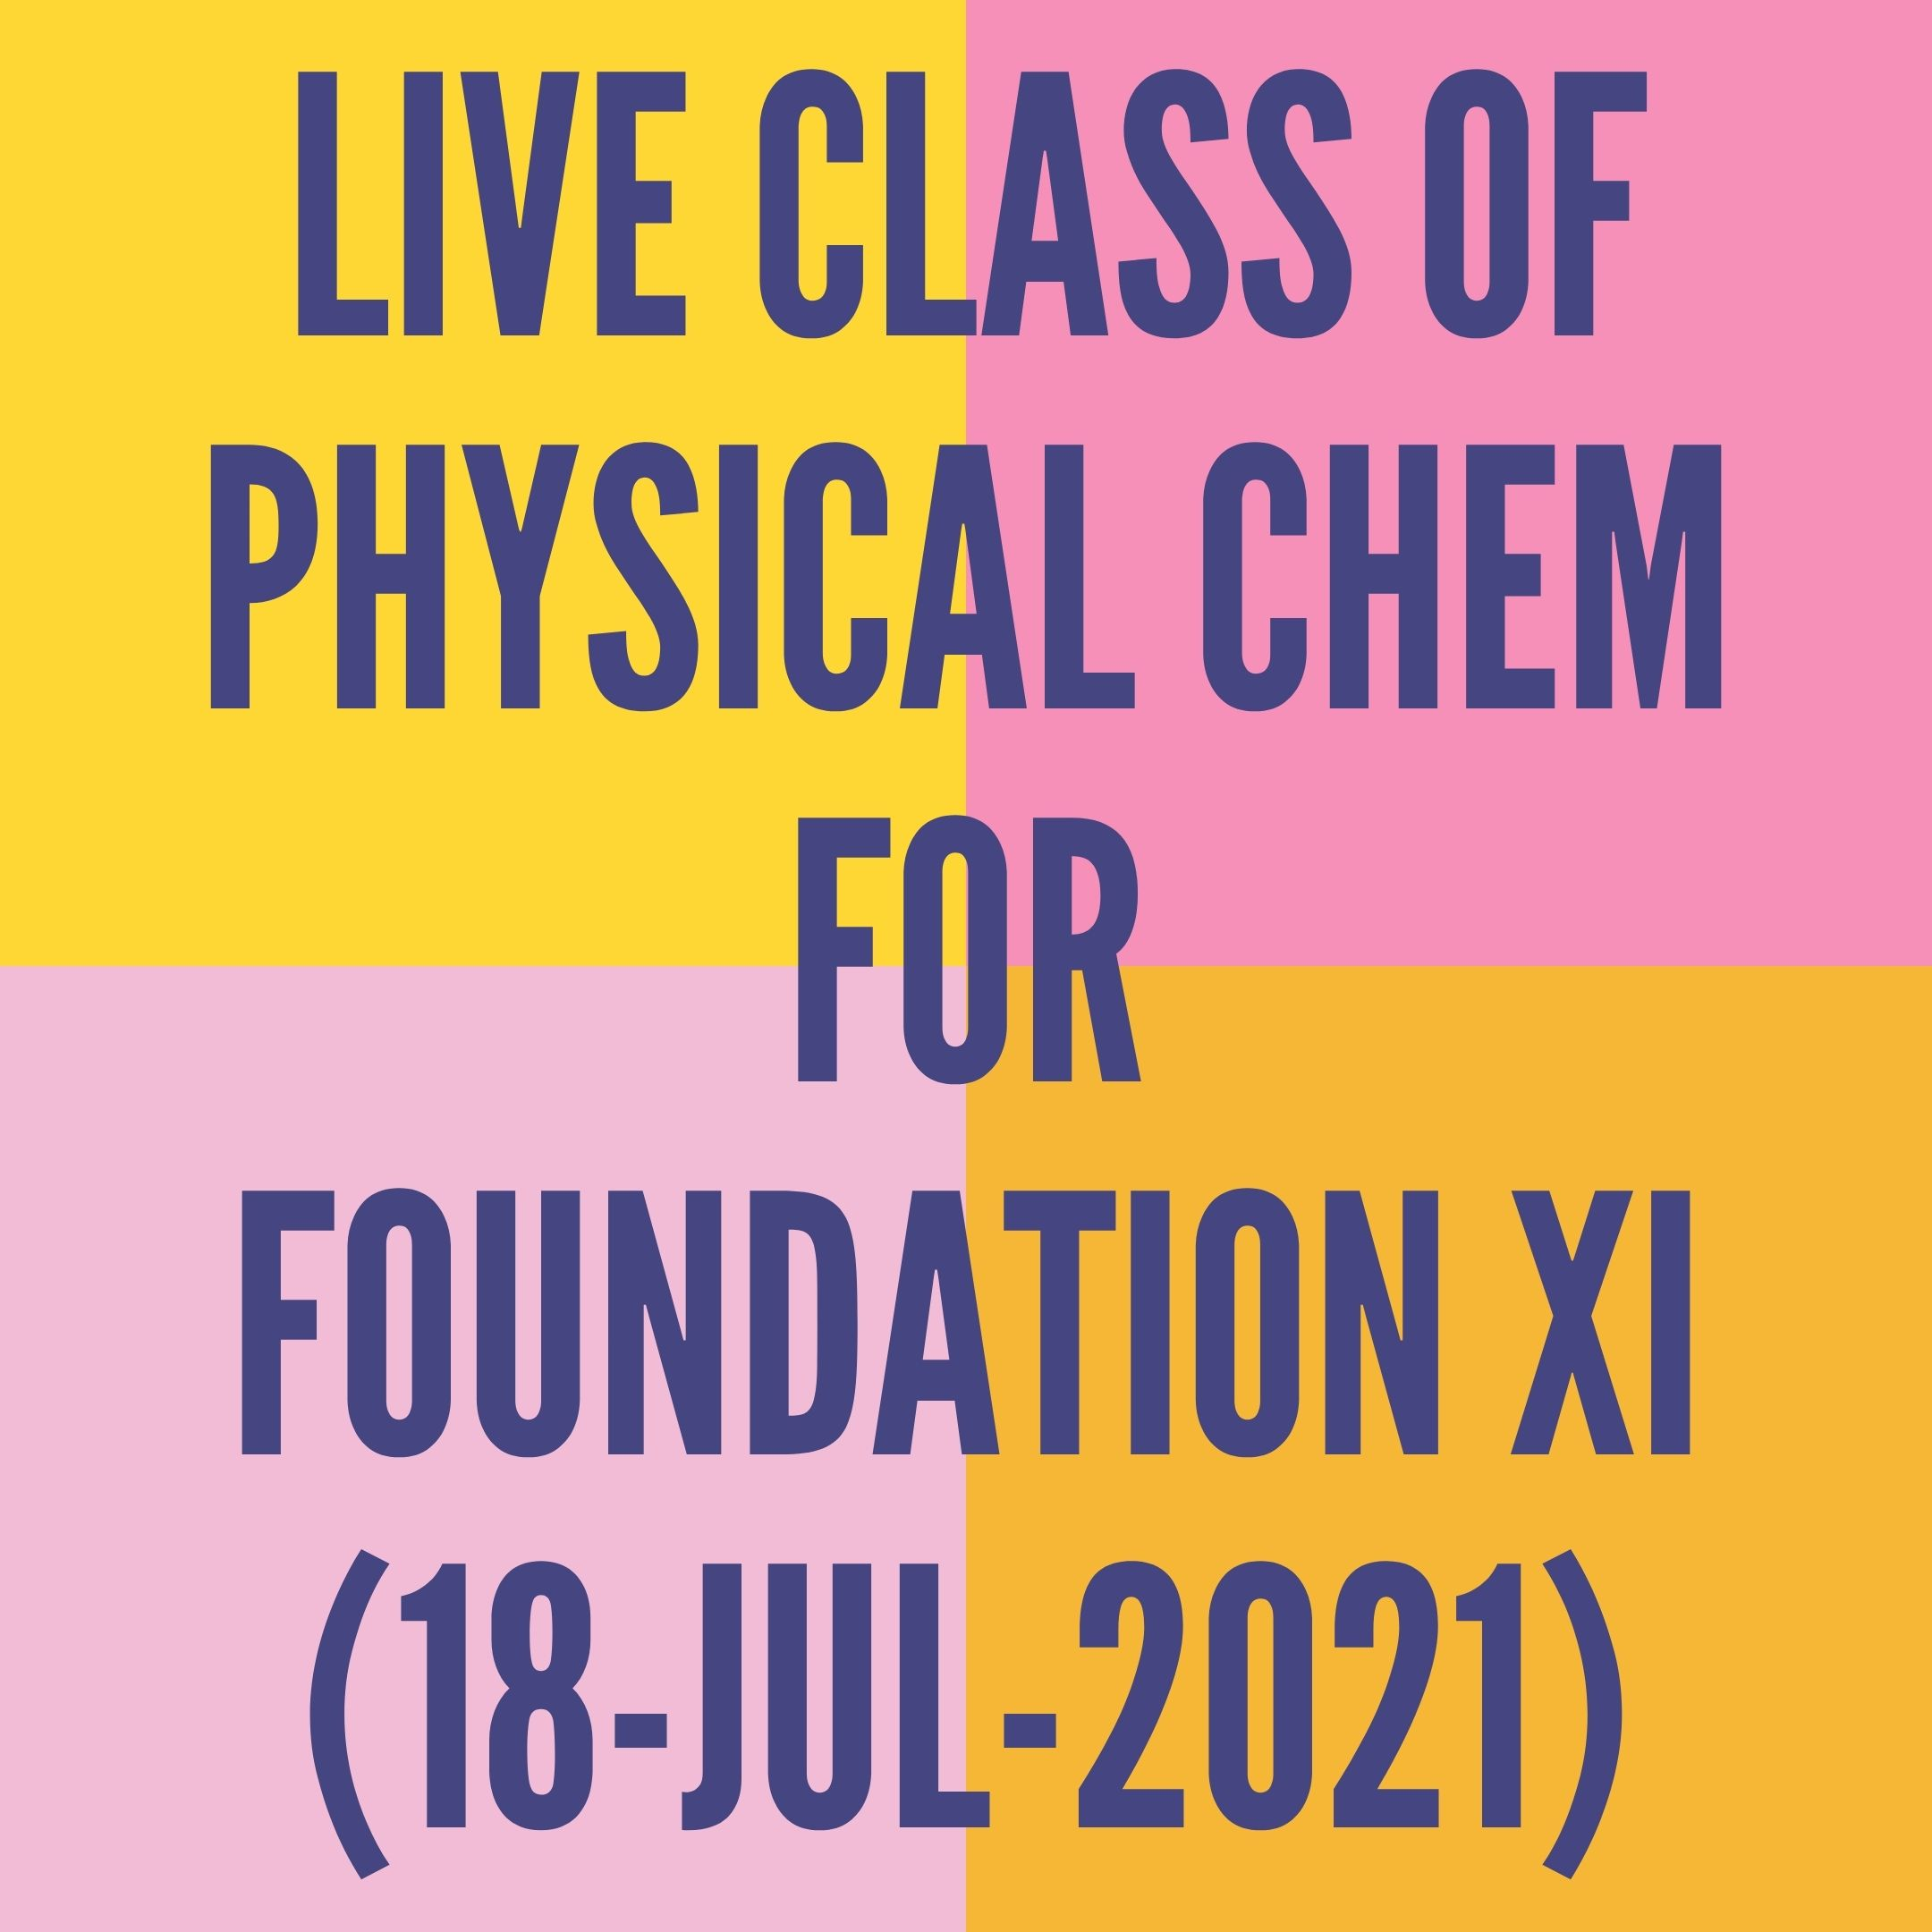 LIVE CLASS OF PHYSICAL CHEMISTRY FOR FOUNDATION XI (18-JUL-2021) REDOX REACTION